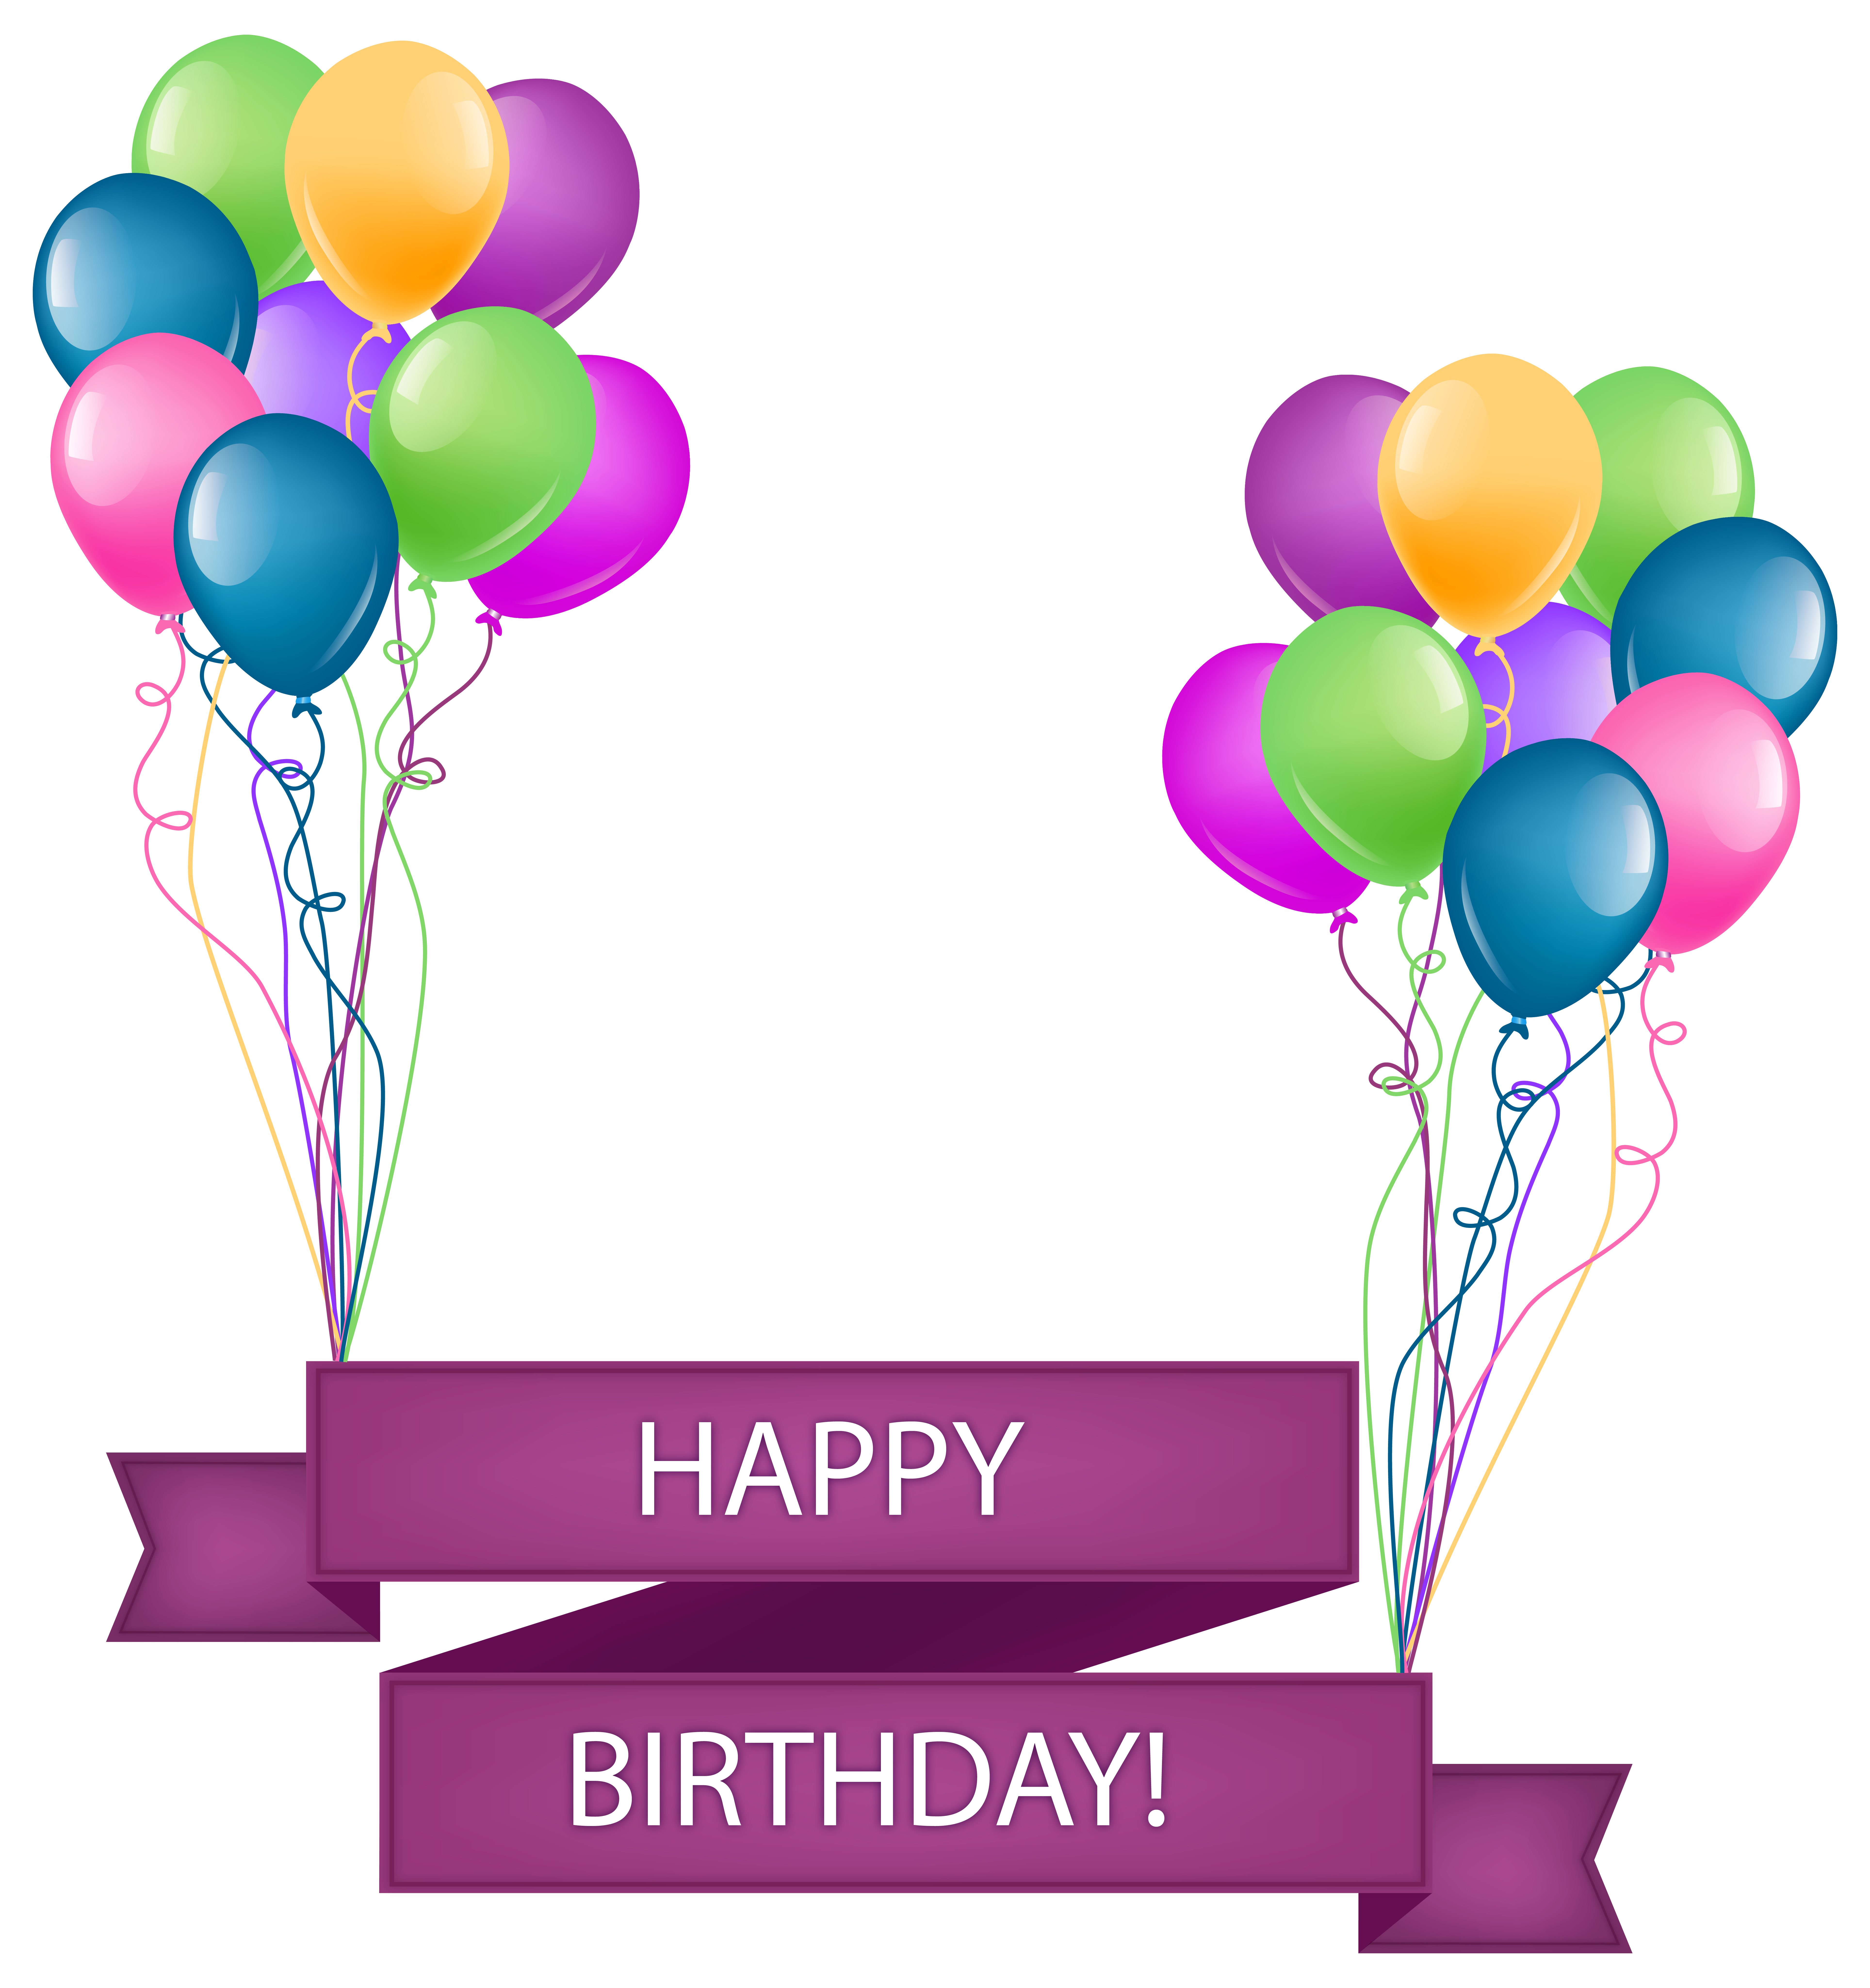 Free Birthday Banner Transparent, Download Free Clip Art.